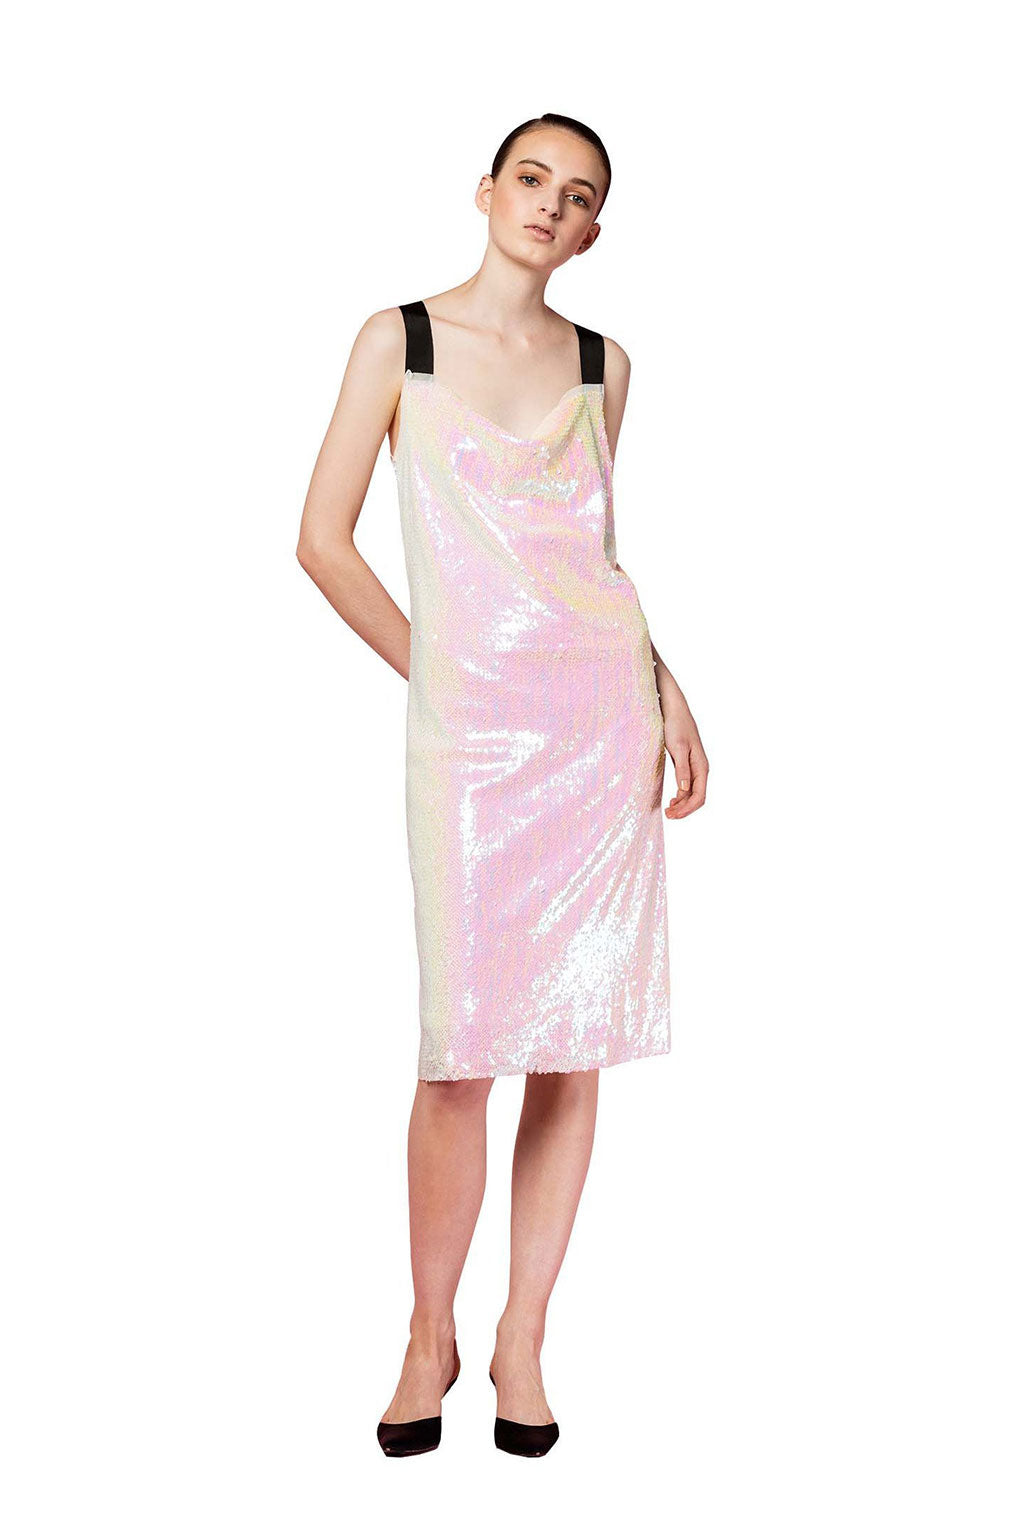 Saint Dress Mermaid Pink